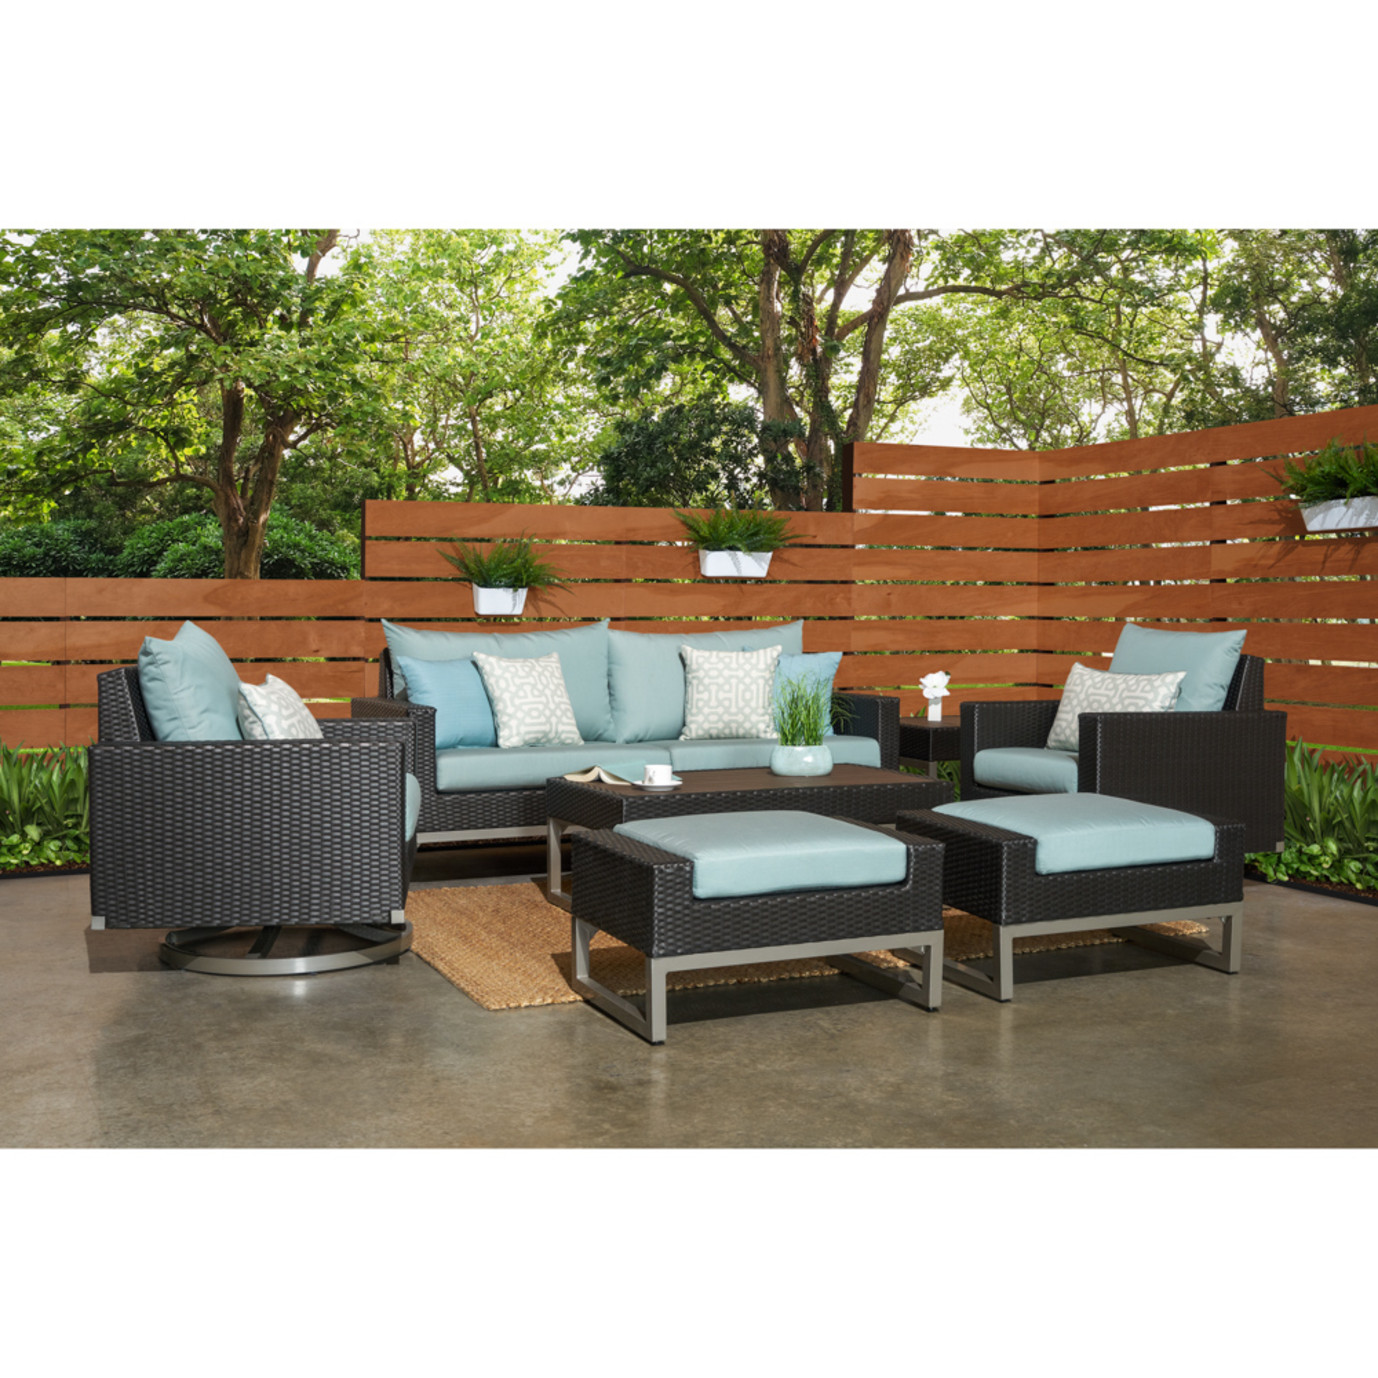 Milo™ Espresso 7pc Motion Deep Seating Set - Spa Blue